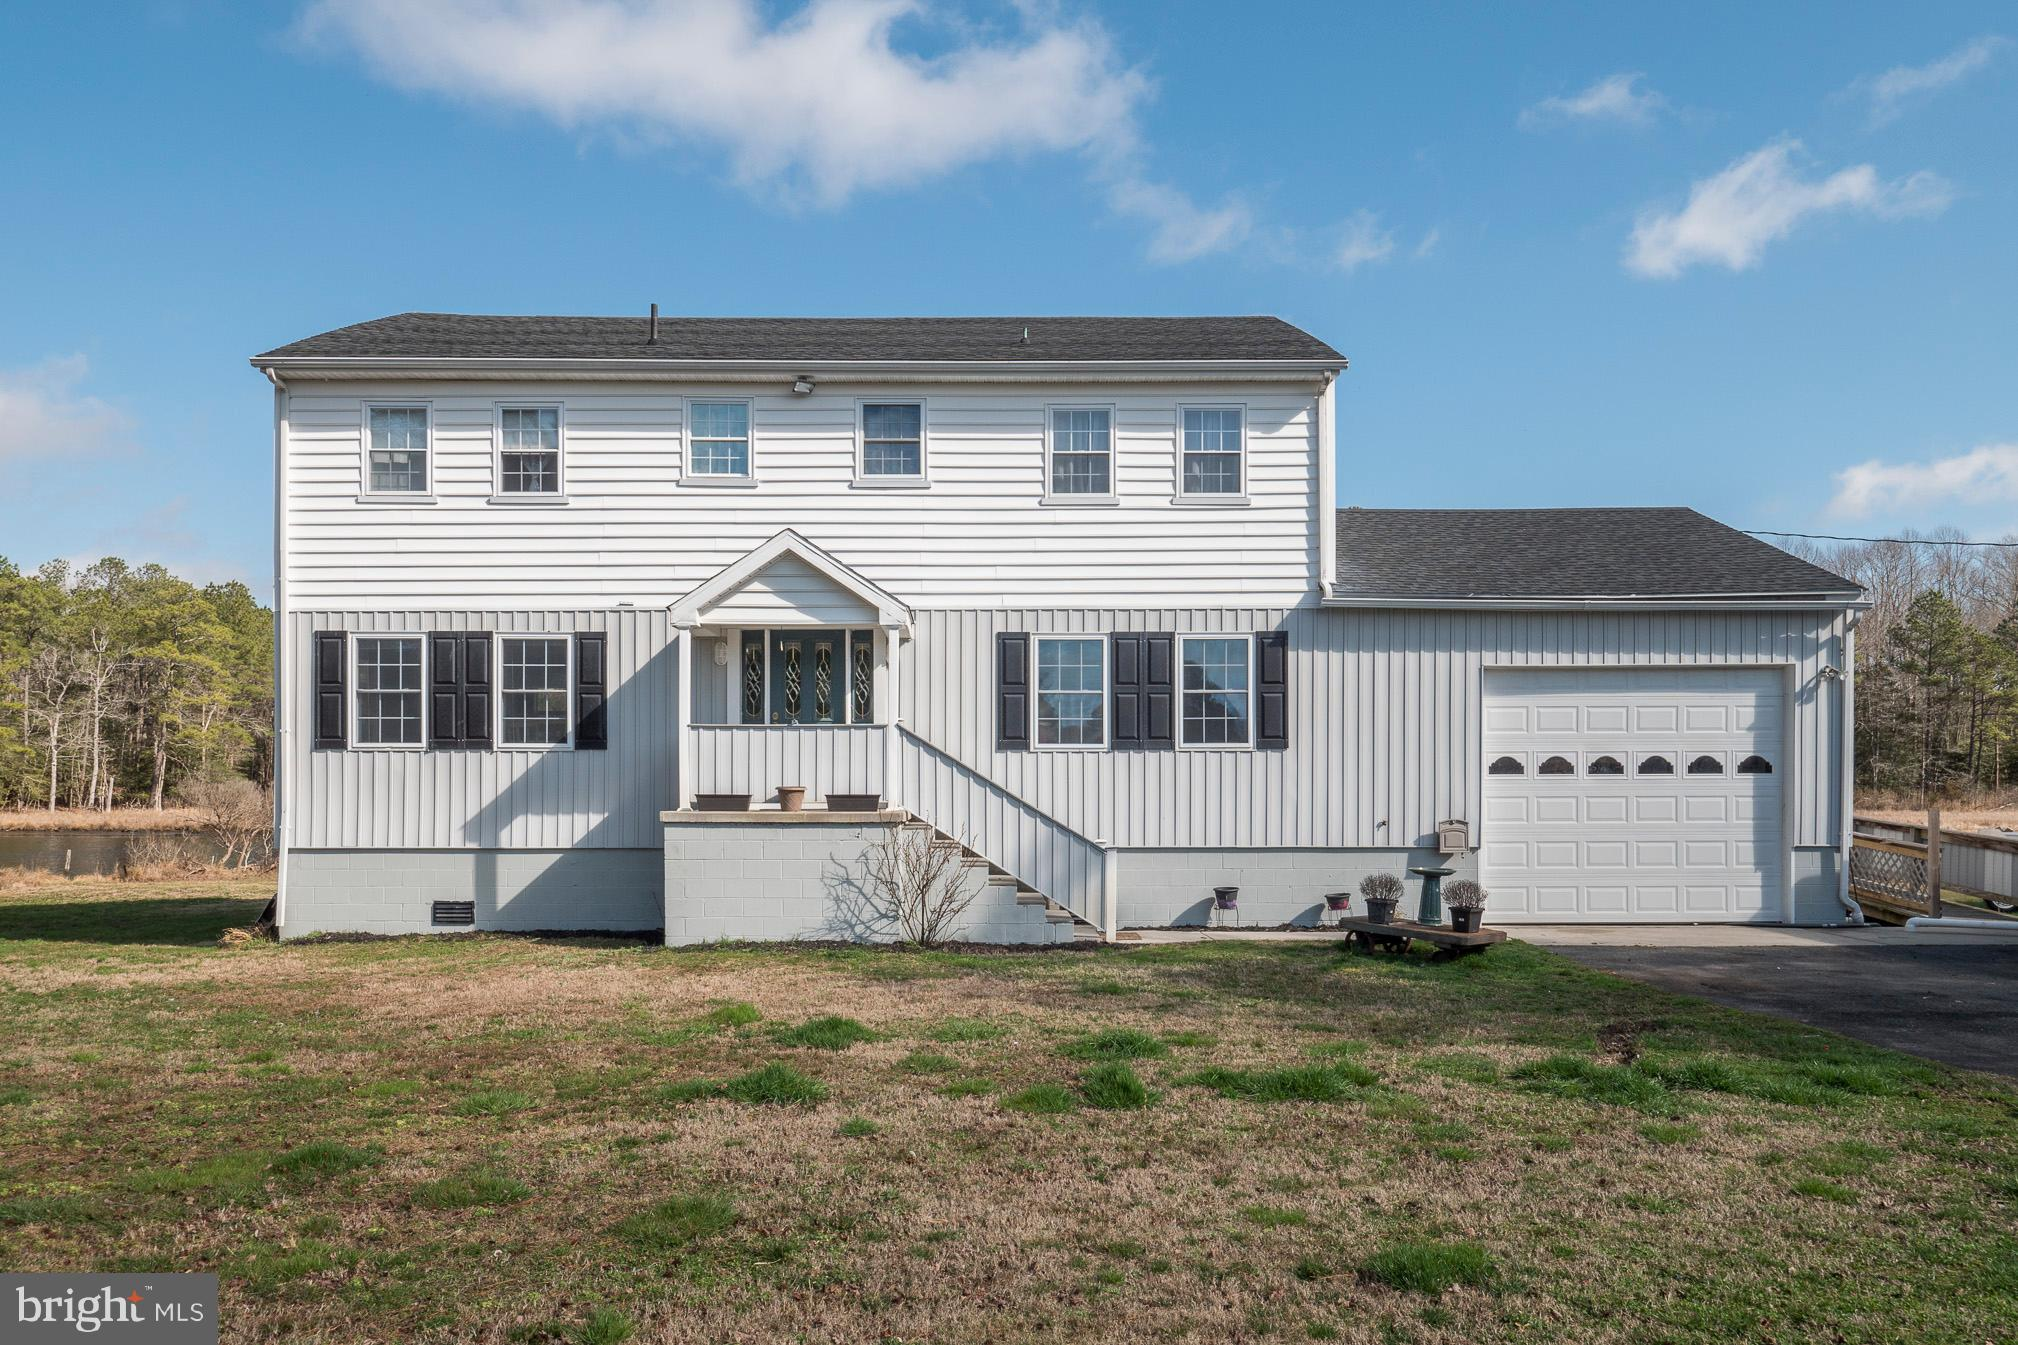 9043 MARSHALL CREEK ROAD, NEWARK, MD 21841